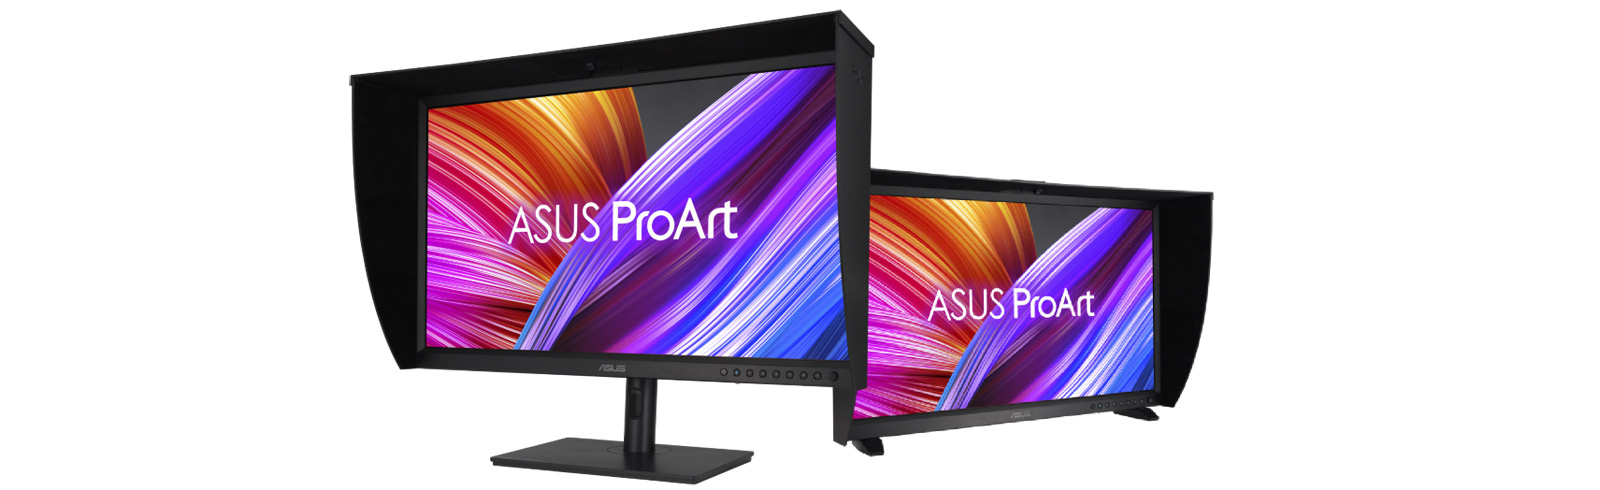 The Asus OLED PA32DC ProArt Display - the world's first OLED monitor with an integrated calibrator